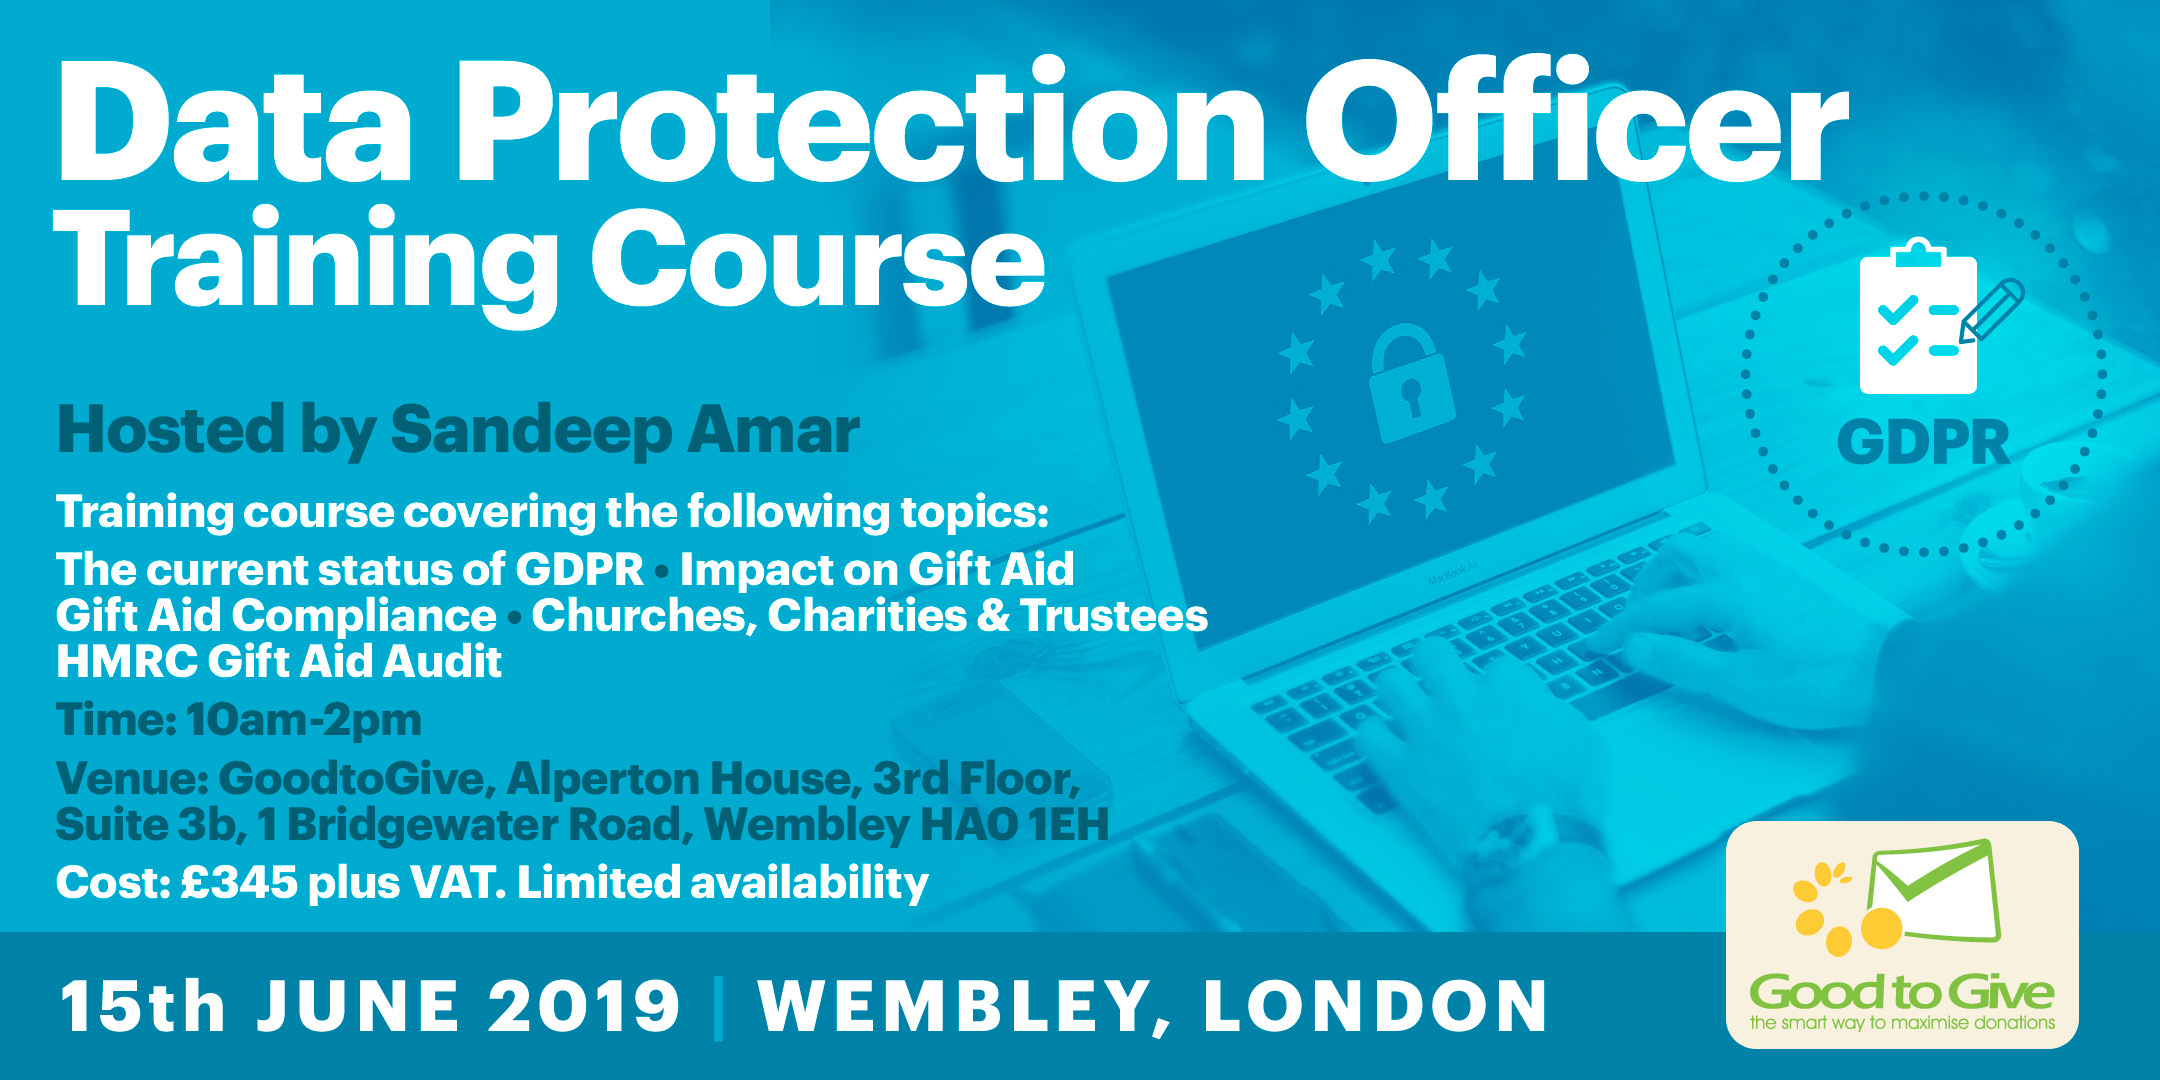 Data Protection Officer Training 15th June 2019